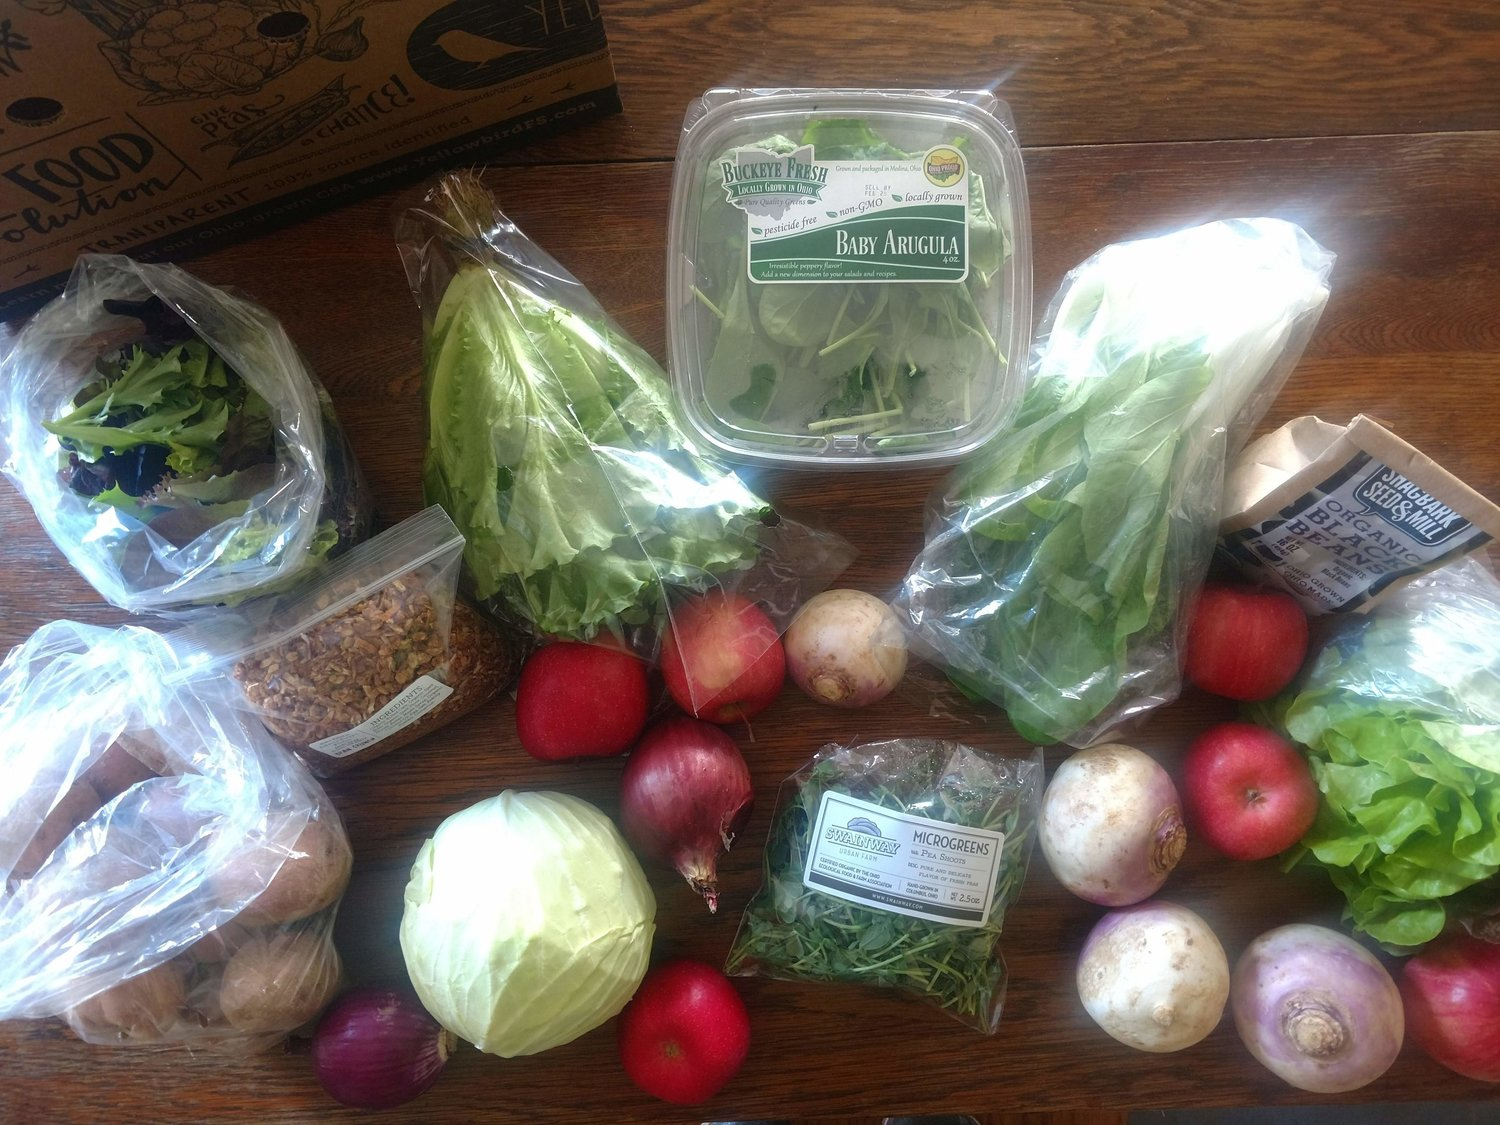 Week 2 CSA box of the Local Foods Challenge